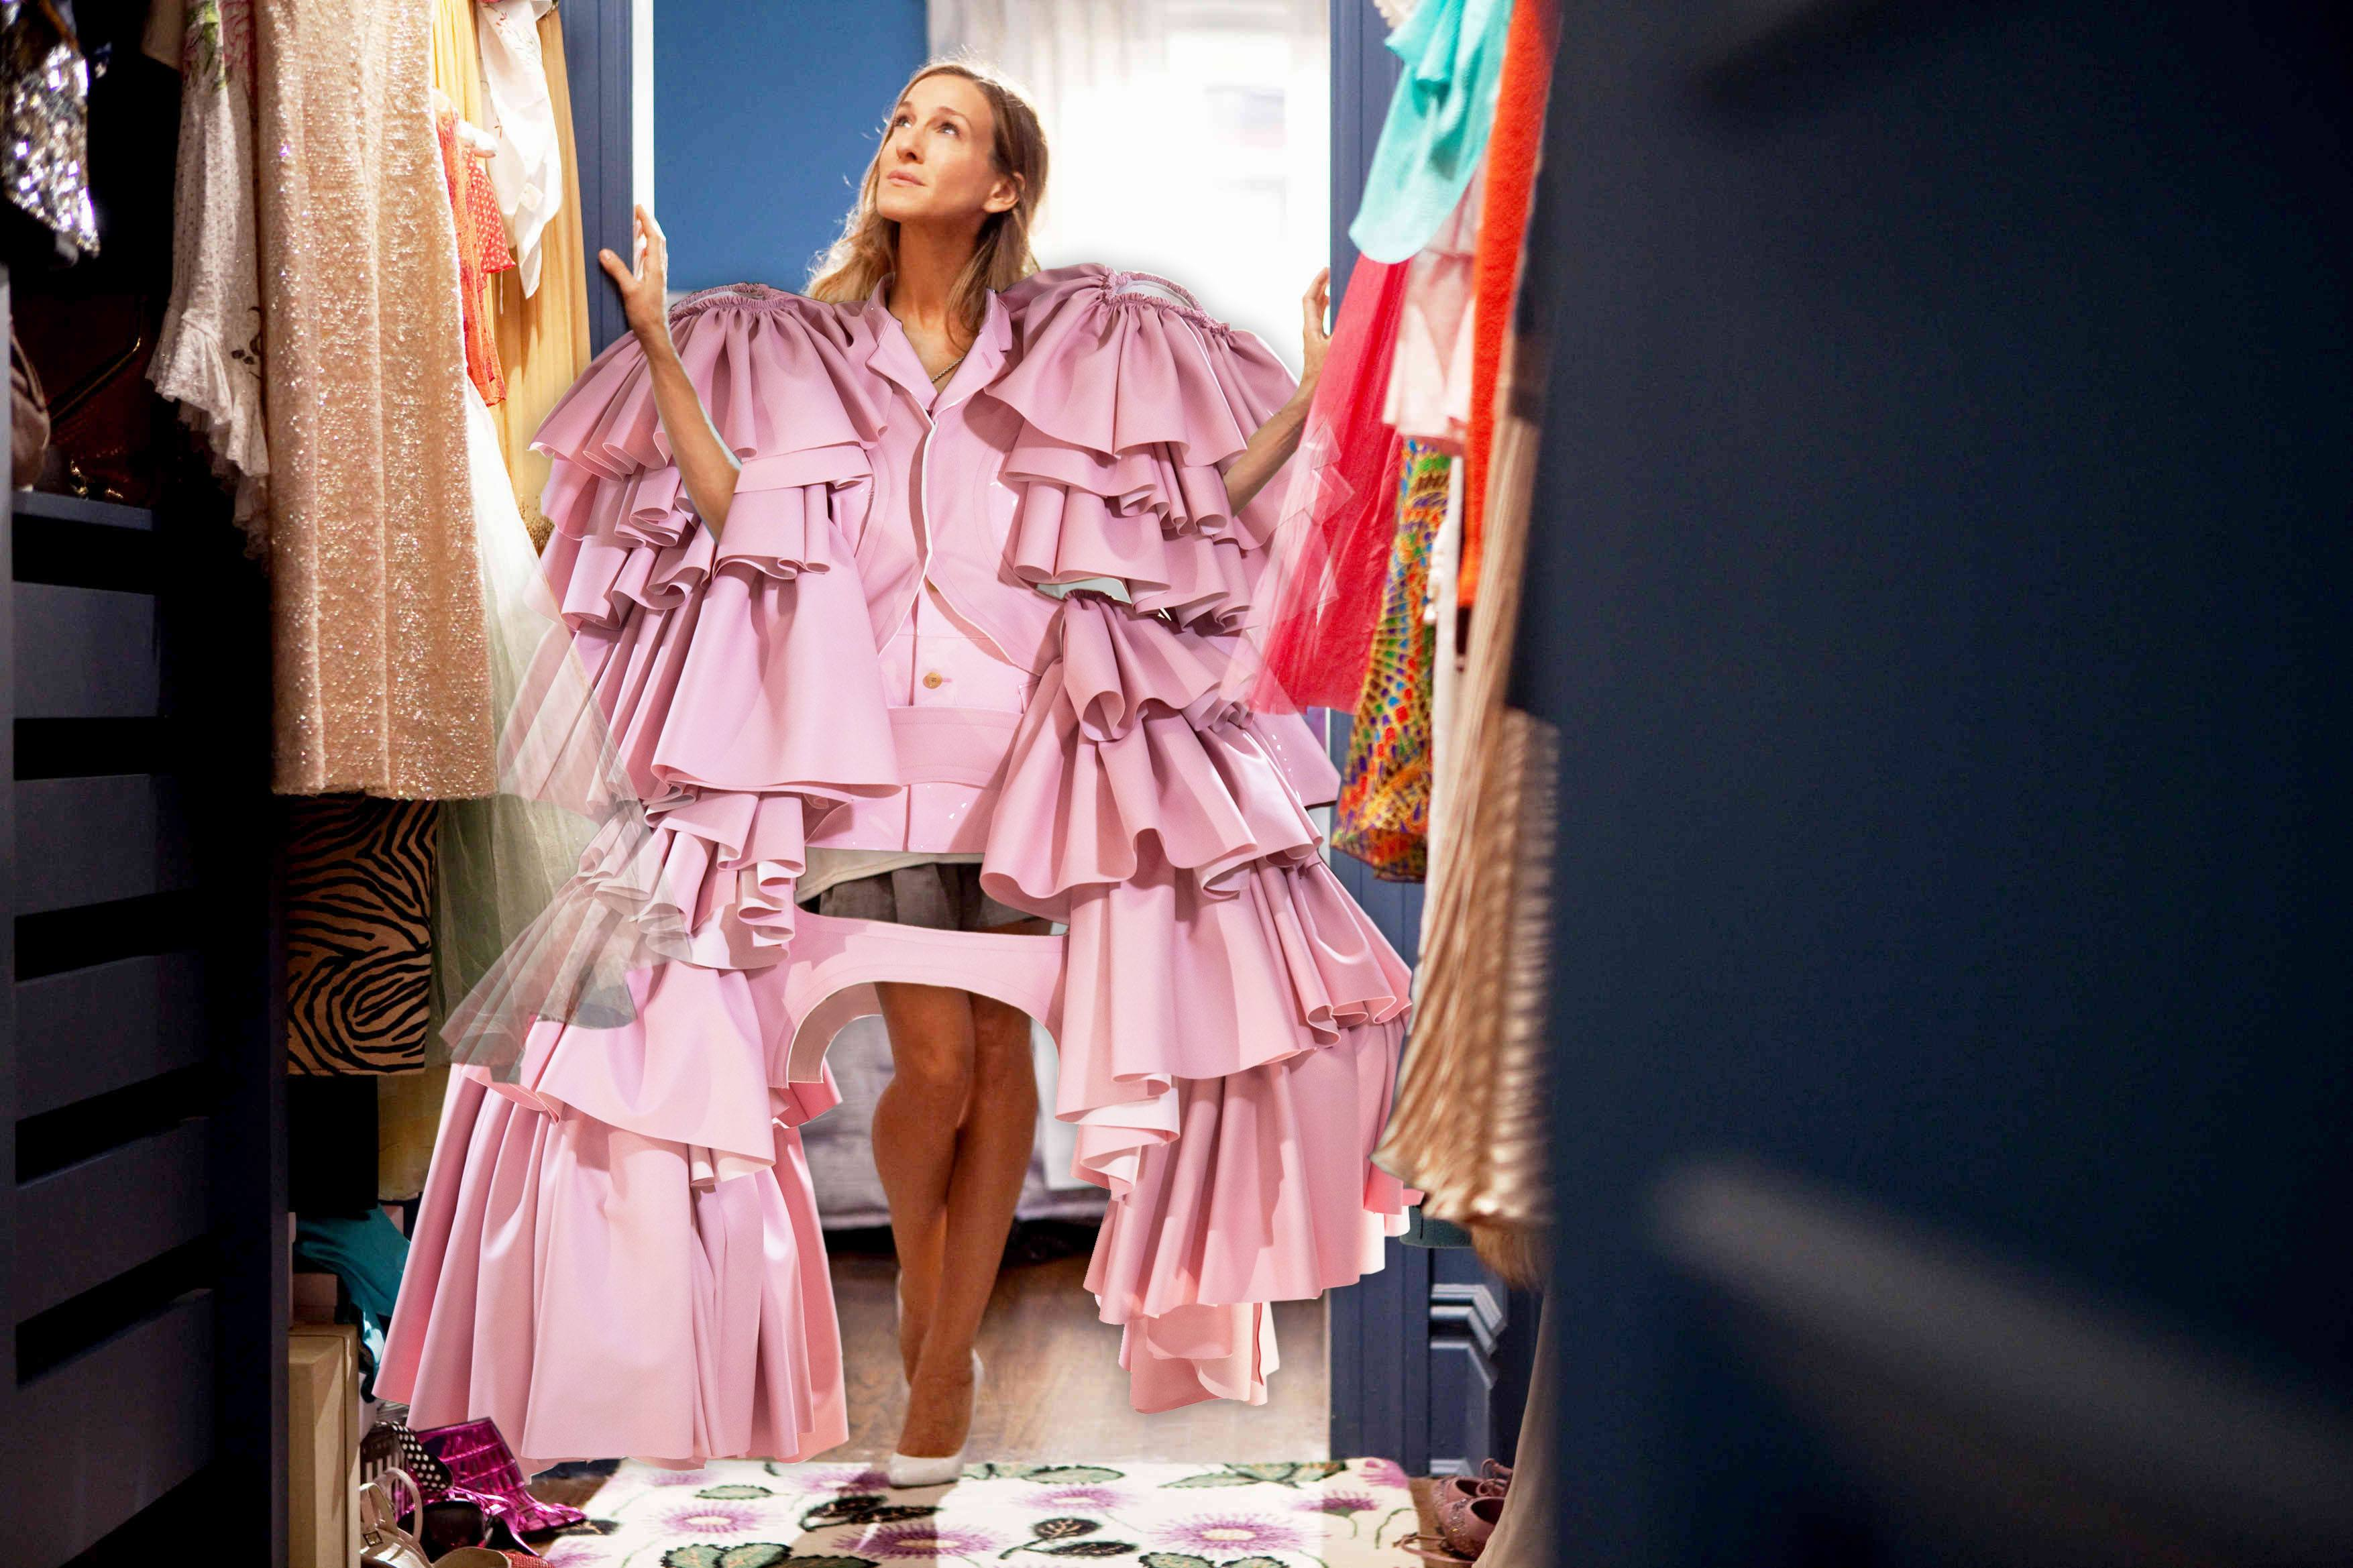 Seidler's Instagram collage of Sex and The City's Sarah Jessica Parker in Comme des Garçons for the Met Gala in a pink fluffy gown standing inside her closet